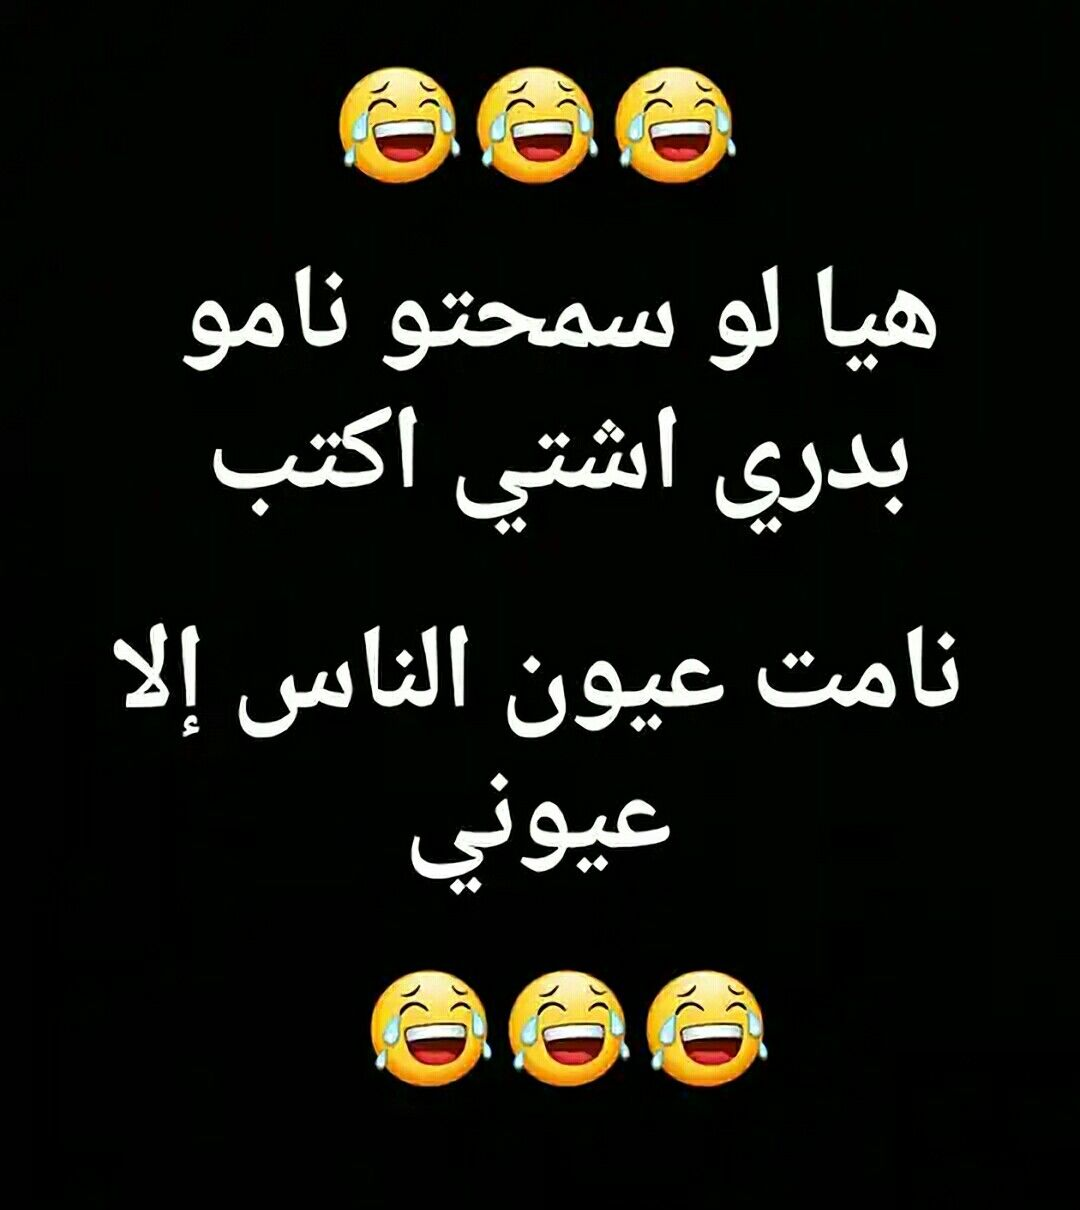 Pin By Noon Azaew On فكاهي Arabic Funny Calligraphy